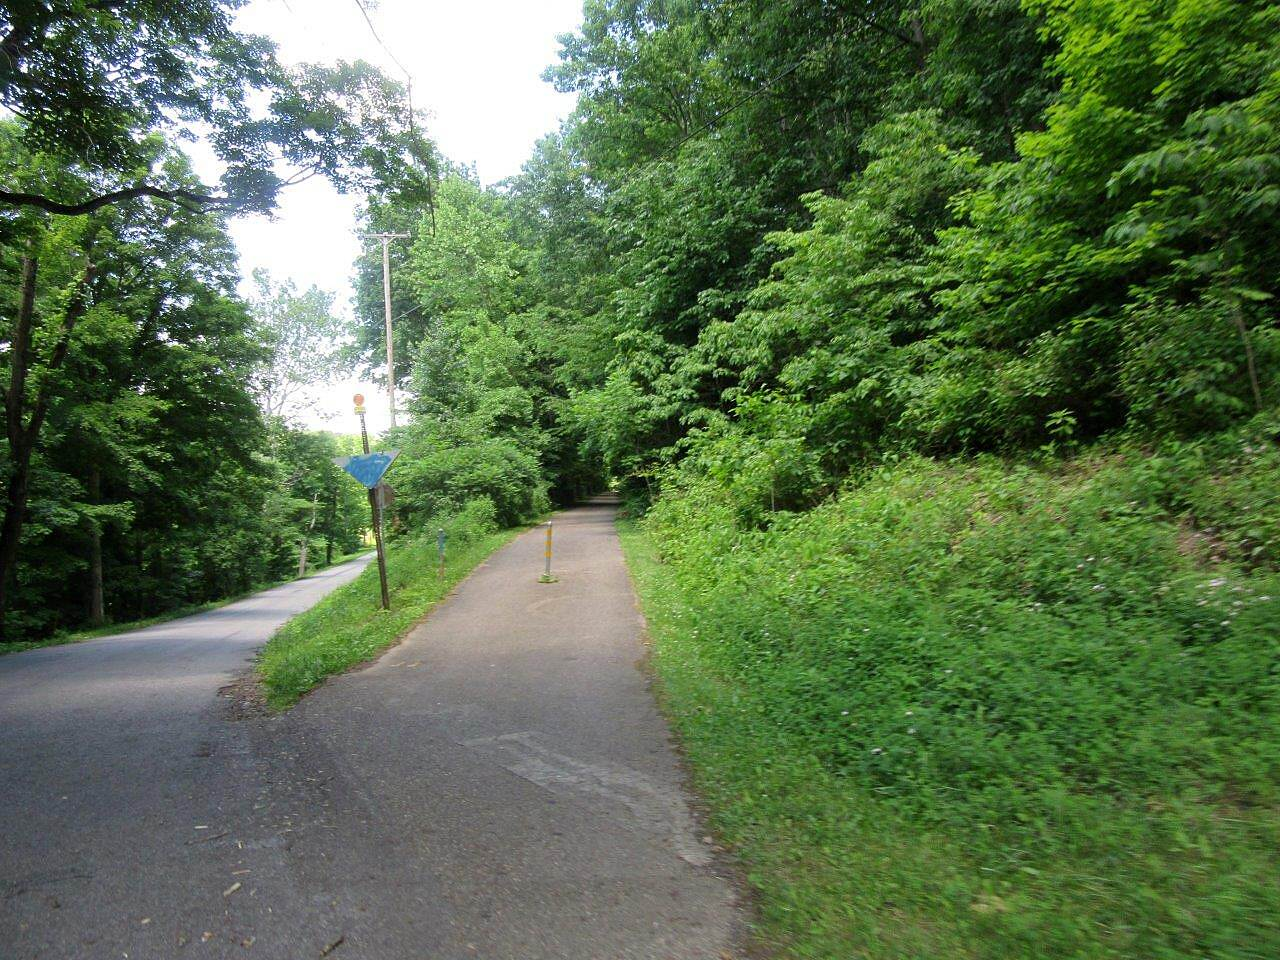 Little Beaver Creek Greenway Trail Uphill section Coming from Lisbon to Leetonia.  Uphill climb from about miles 4-6.  Enjoy the ride downhill on the return trip!